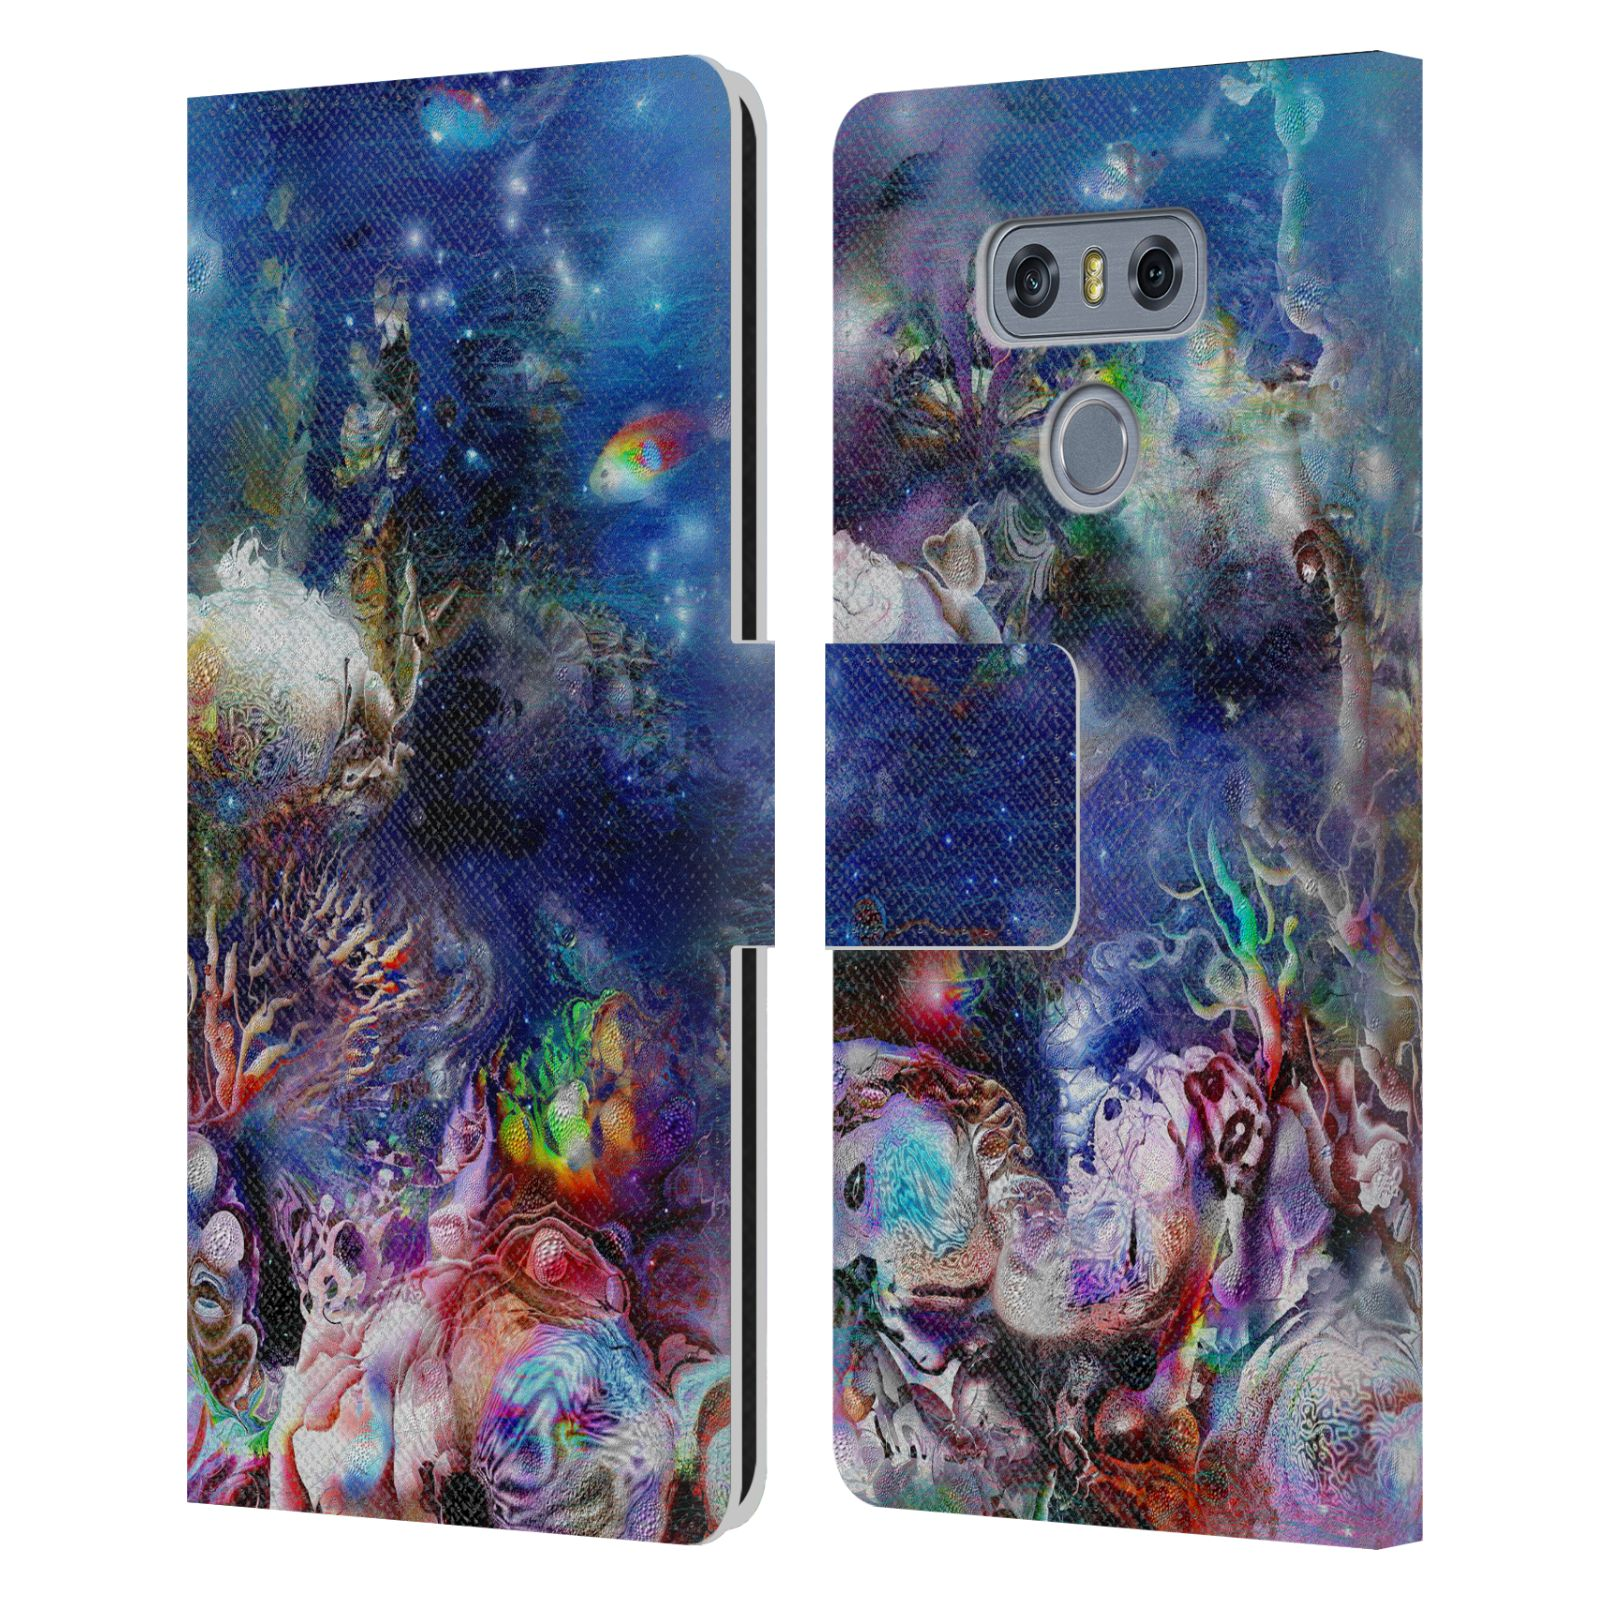 OFFICIAL-RUNA-SEA-REEFS-LEATHER-BOOK-WALLET-CASE-COVER-FOR-LG-PHONES-1